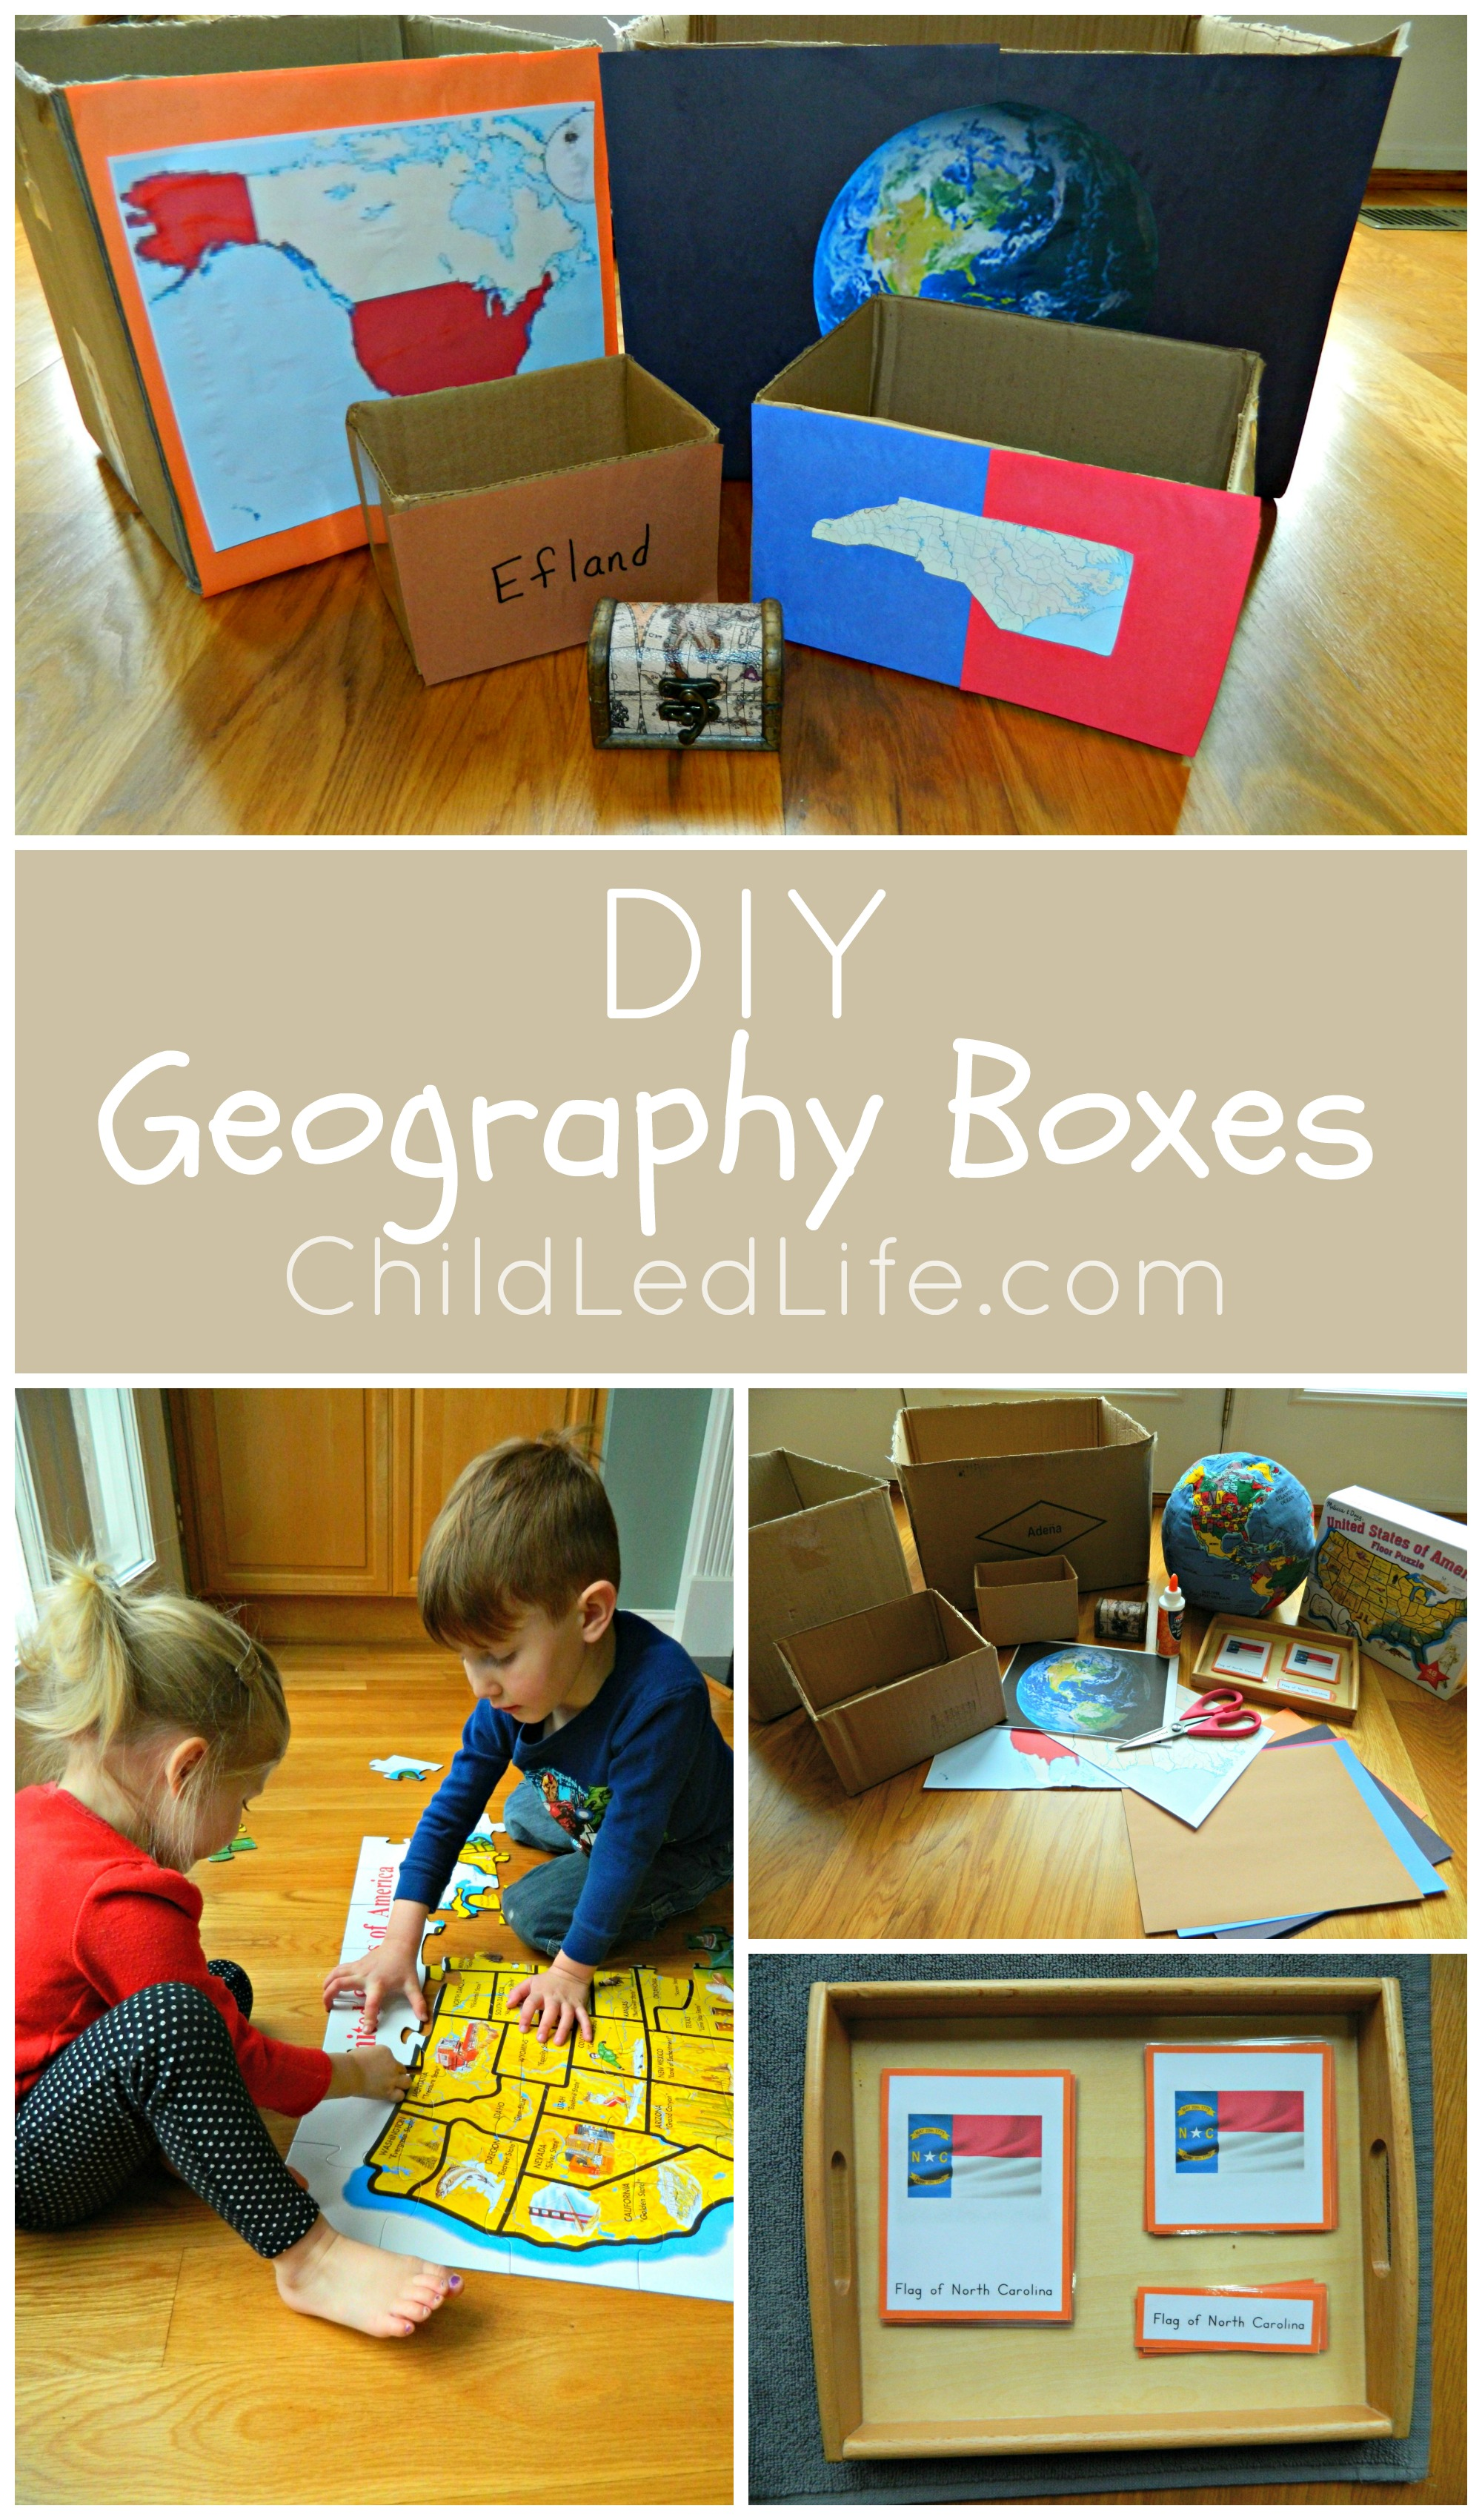 DIY Geography Boxes